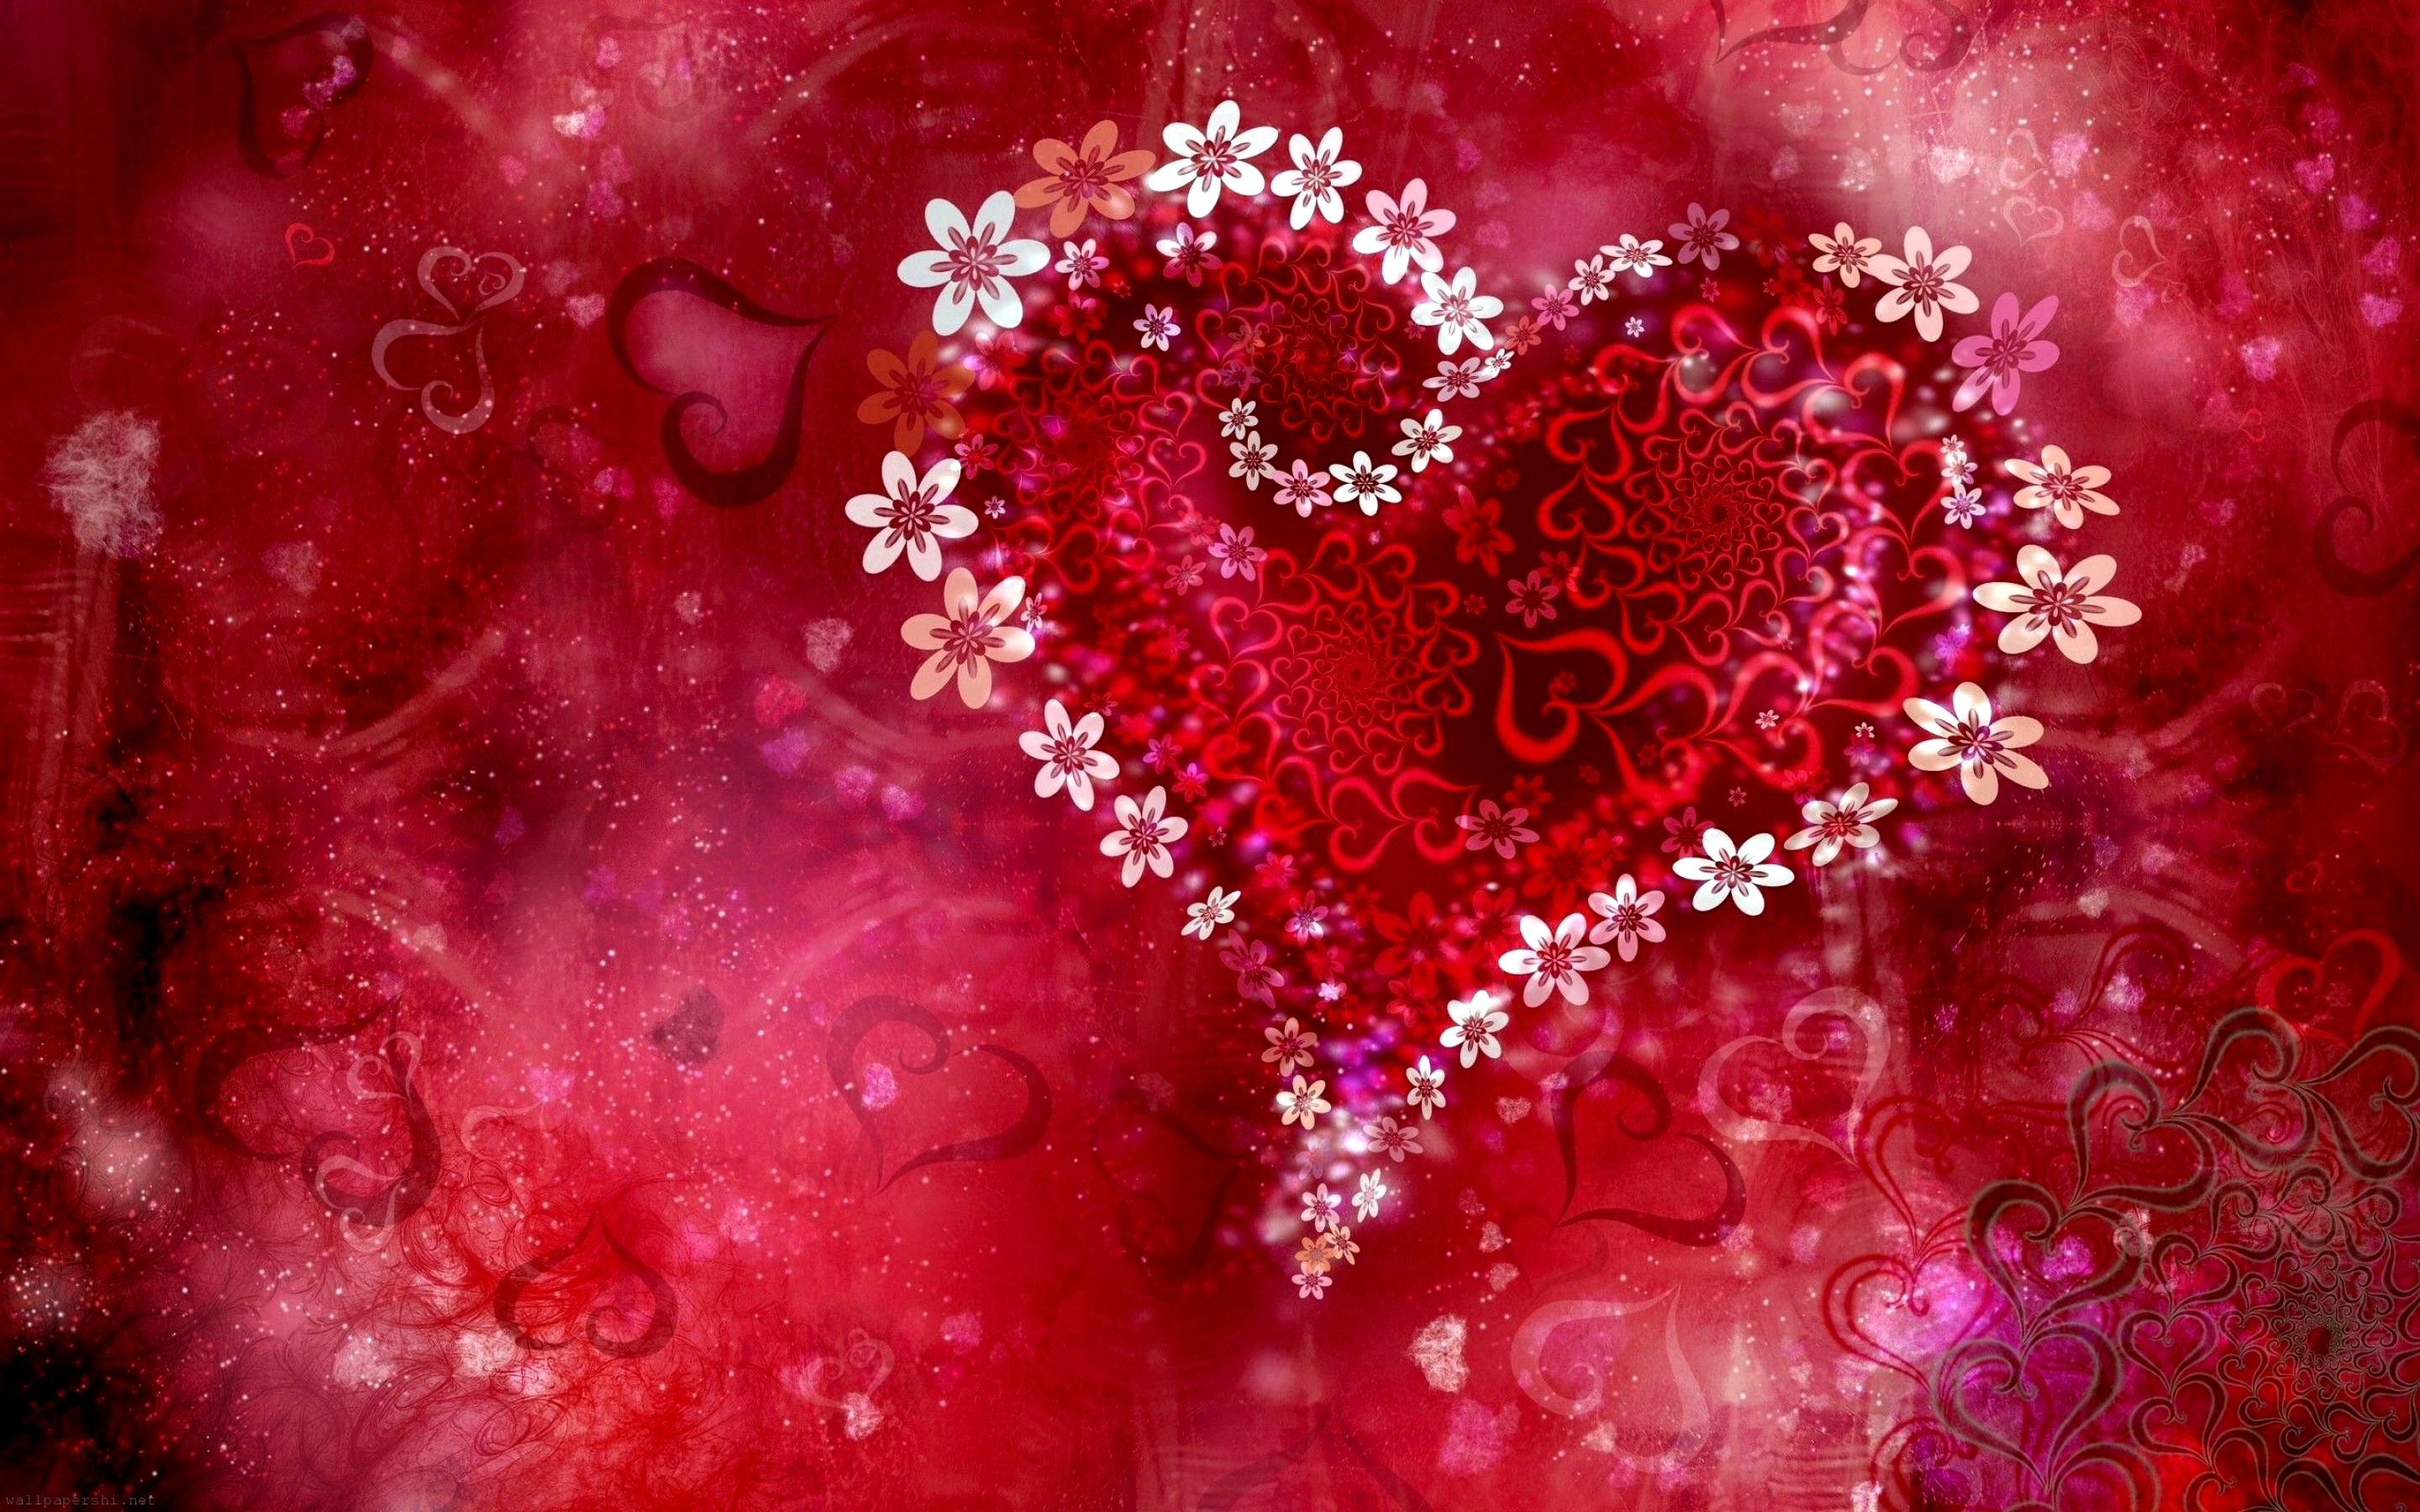 Heart HD Wallpaper